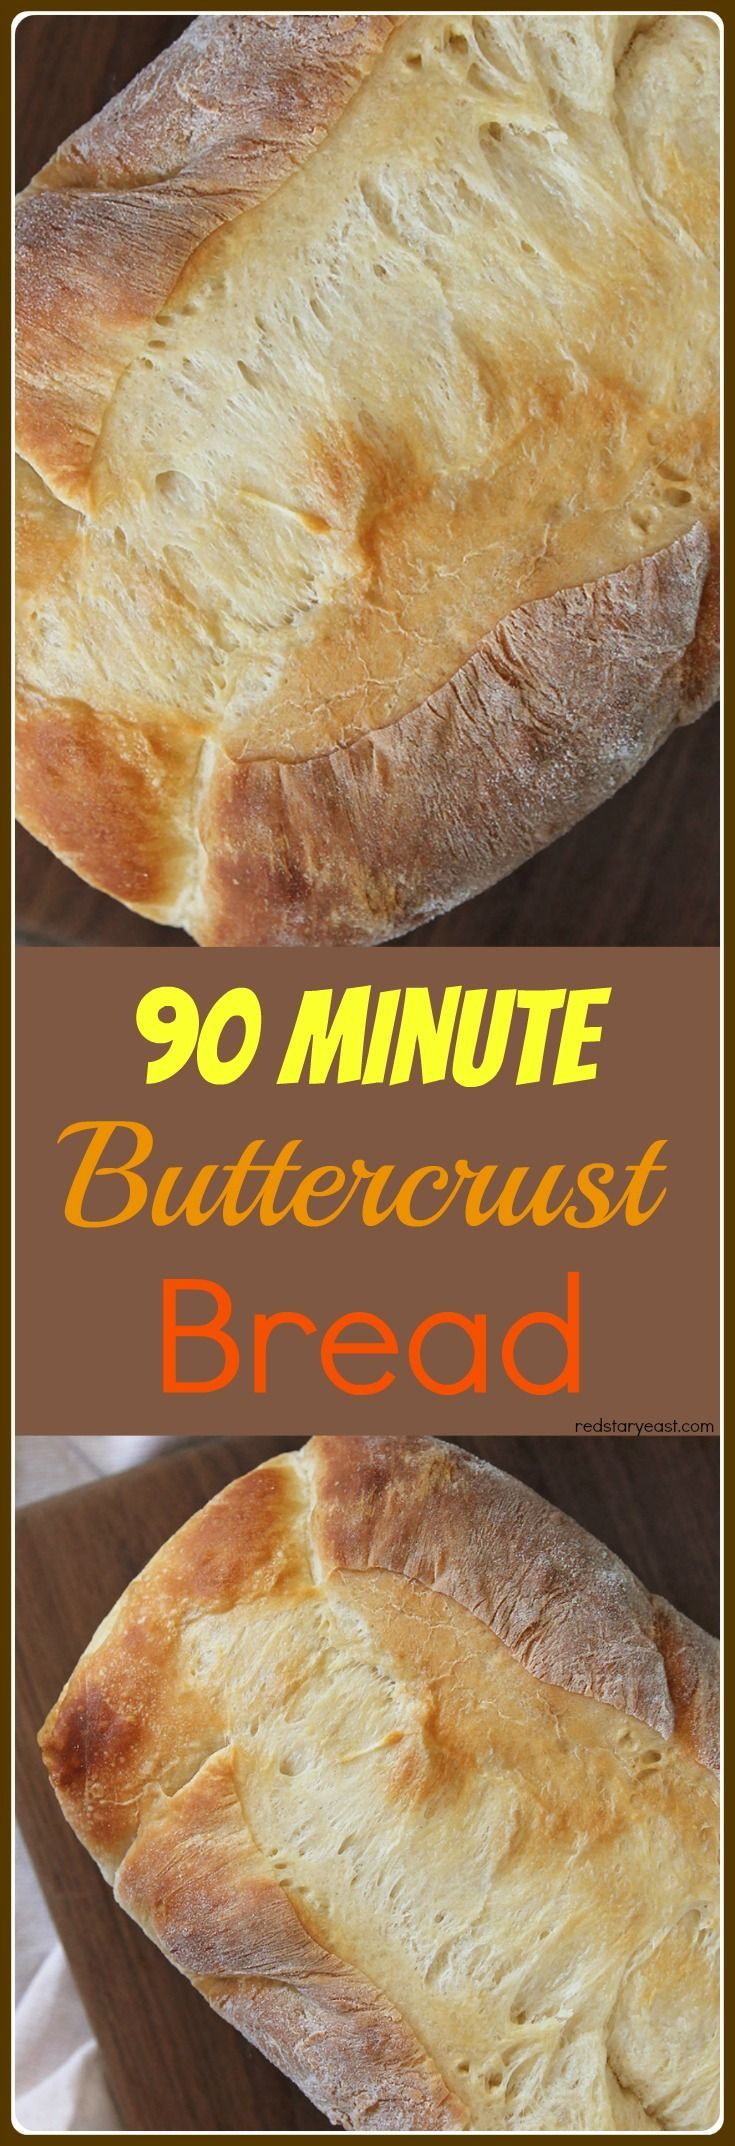 A traditional, basic white bread made easy by a streamlined method. Made special with butter in the bread and on top too! Find recipe at redstaryeast.com.